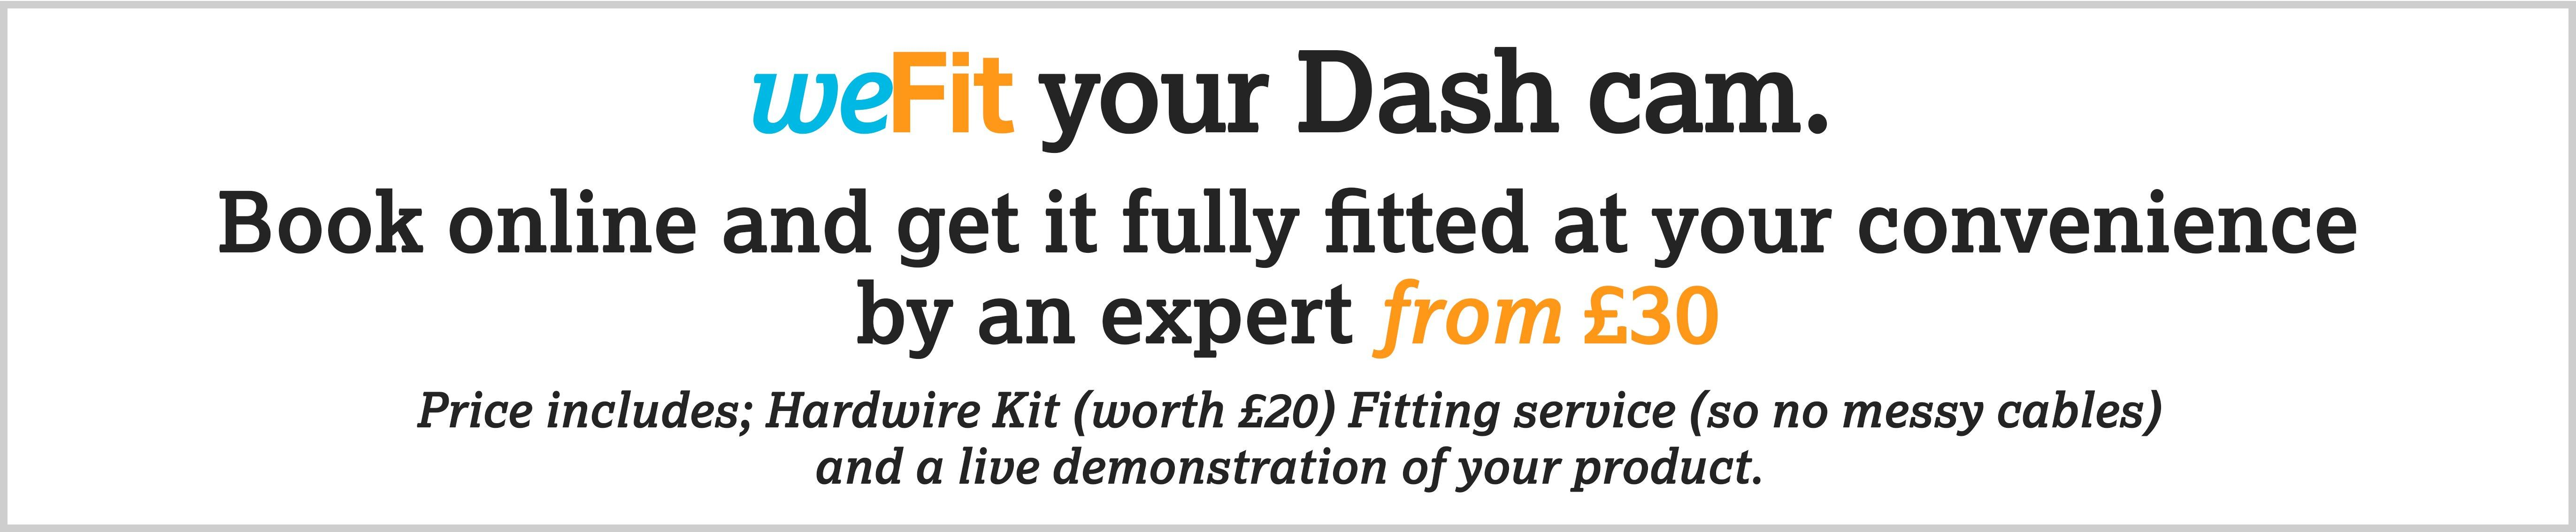 weFit your dash cam